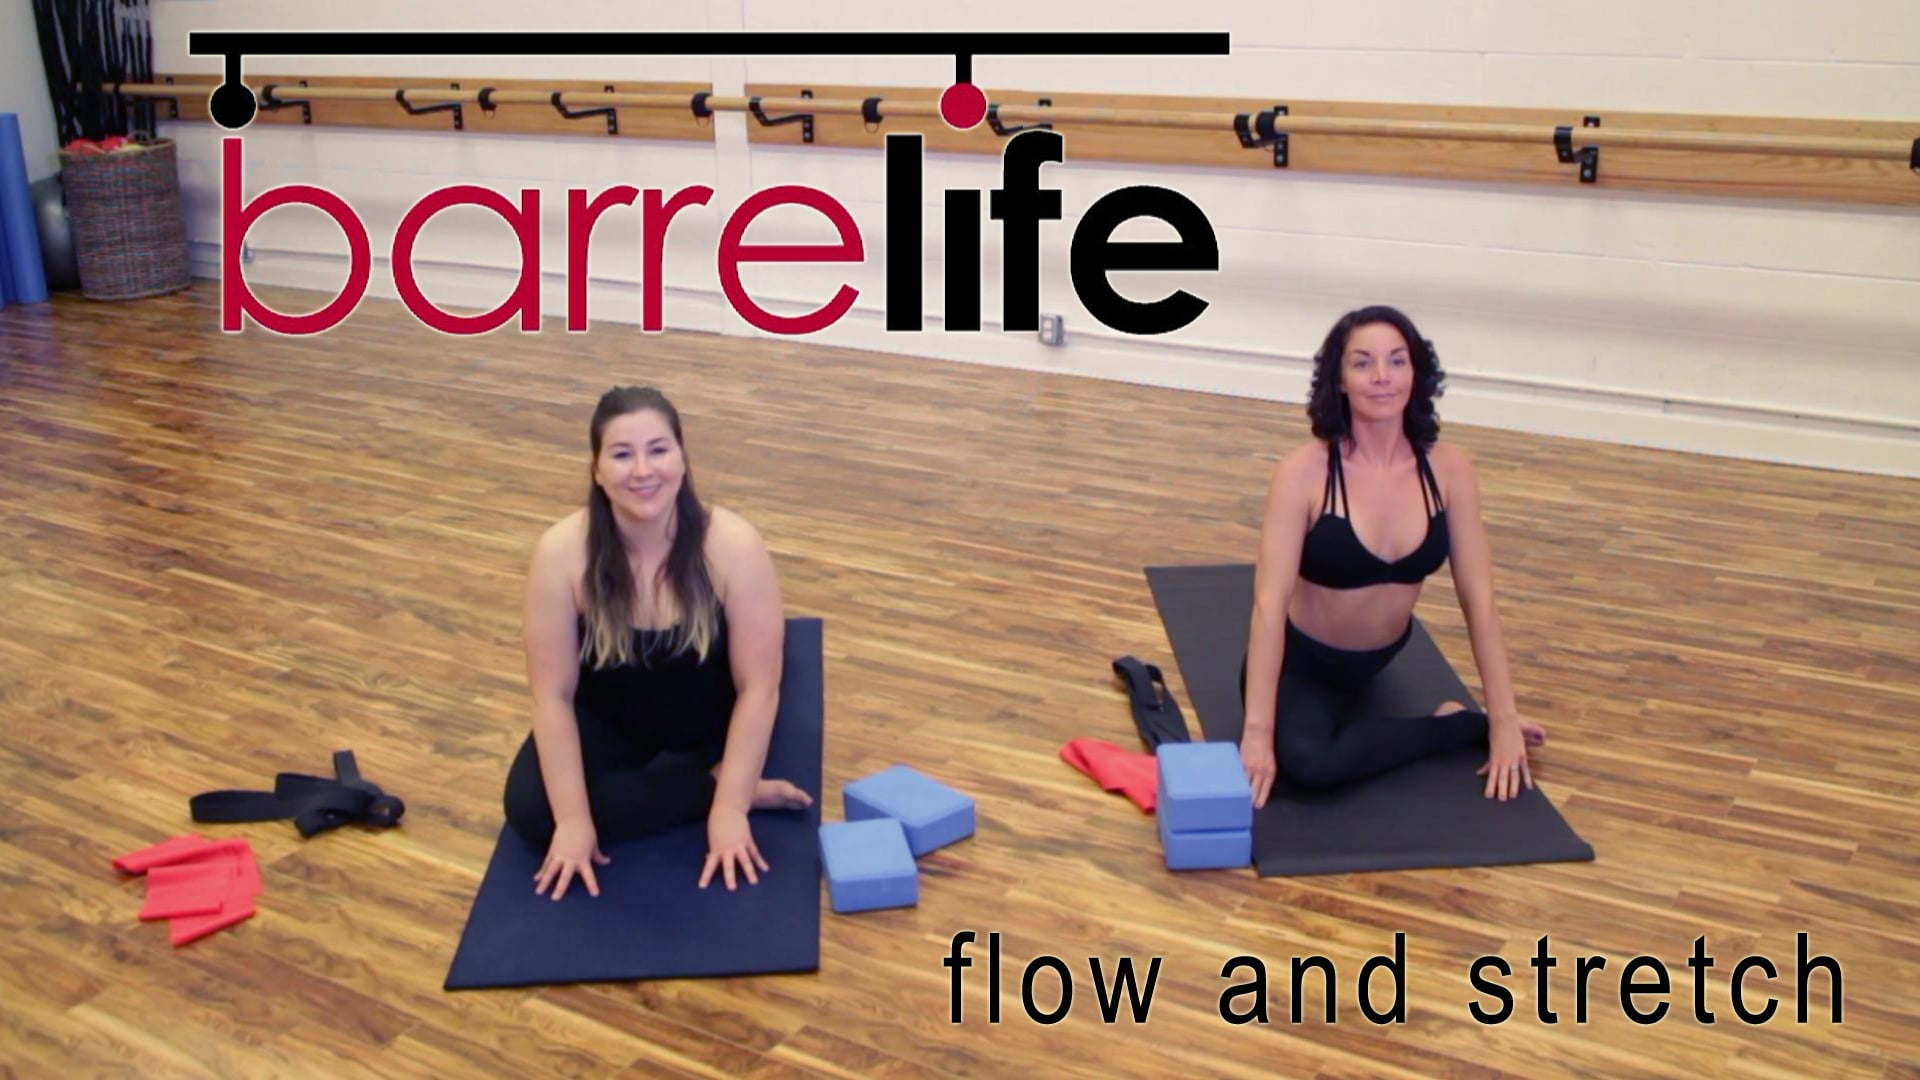 Barre Life Studio: Flow and Stretch Class